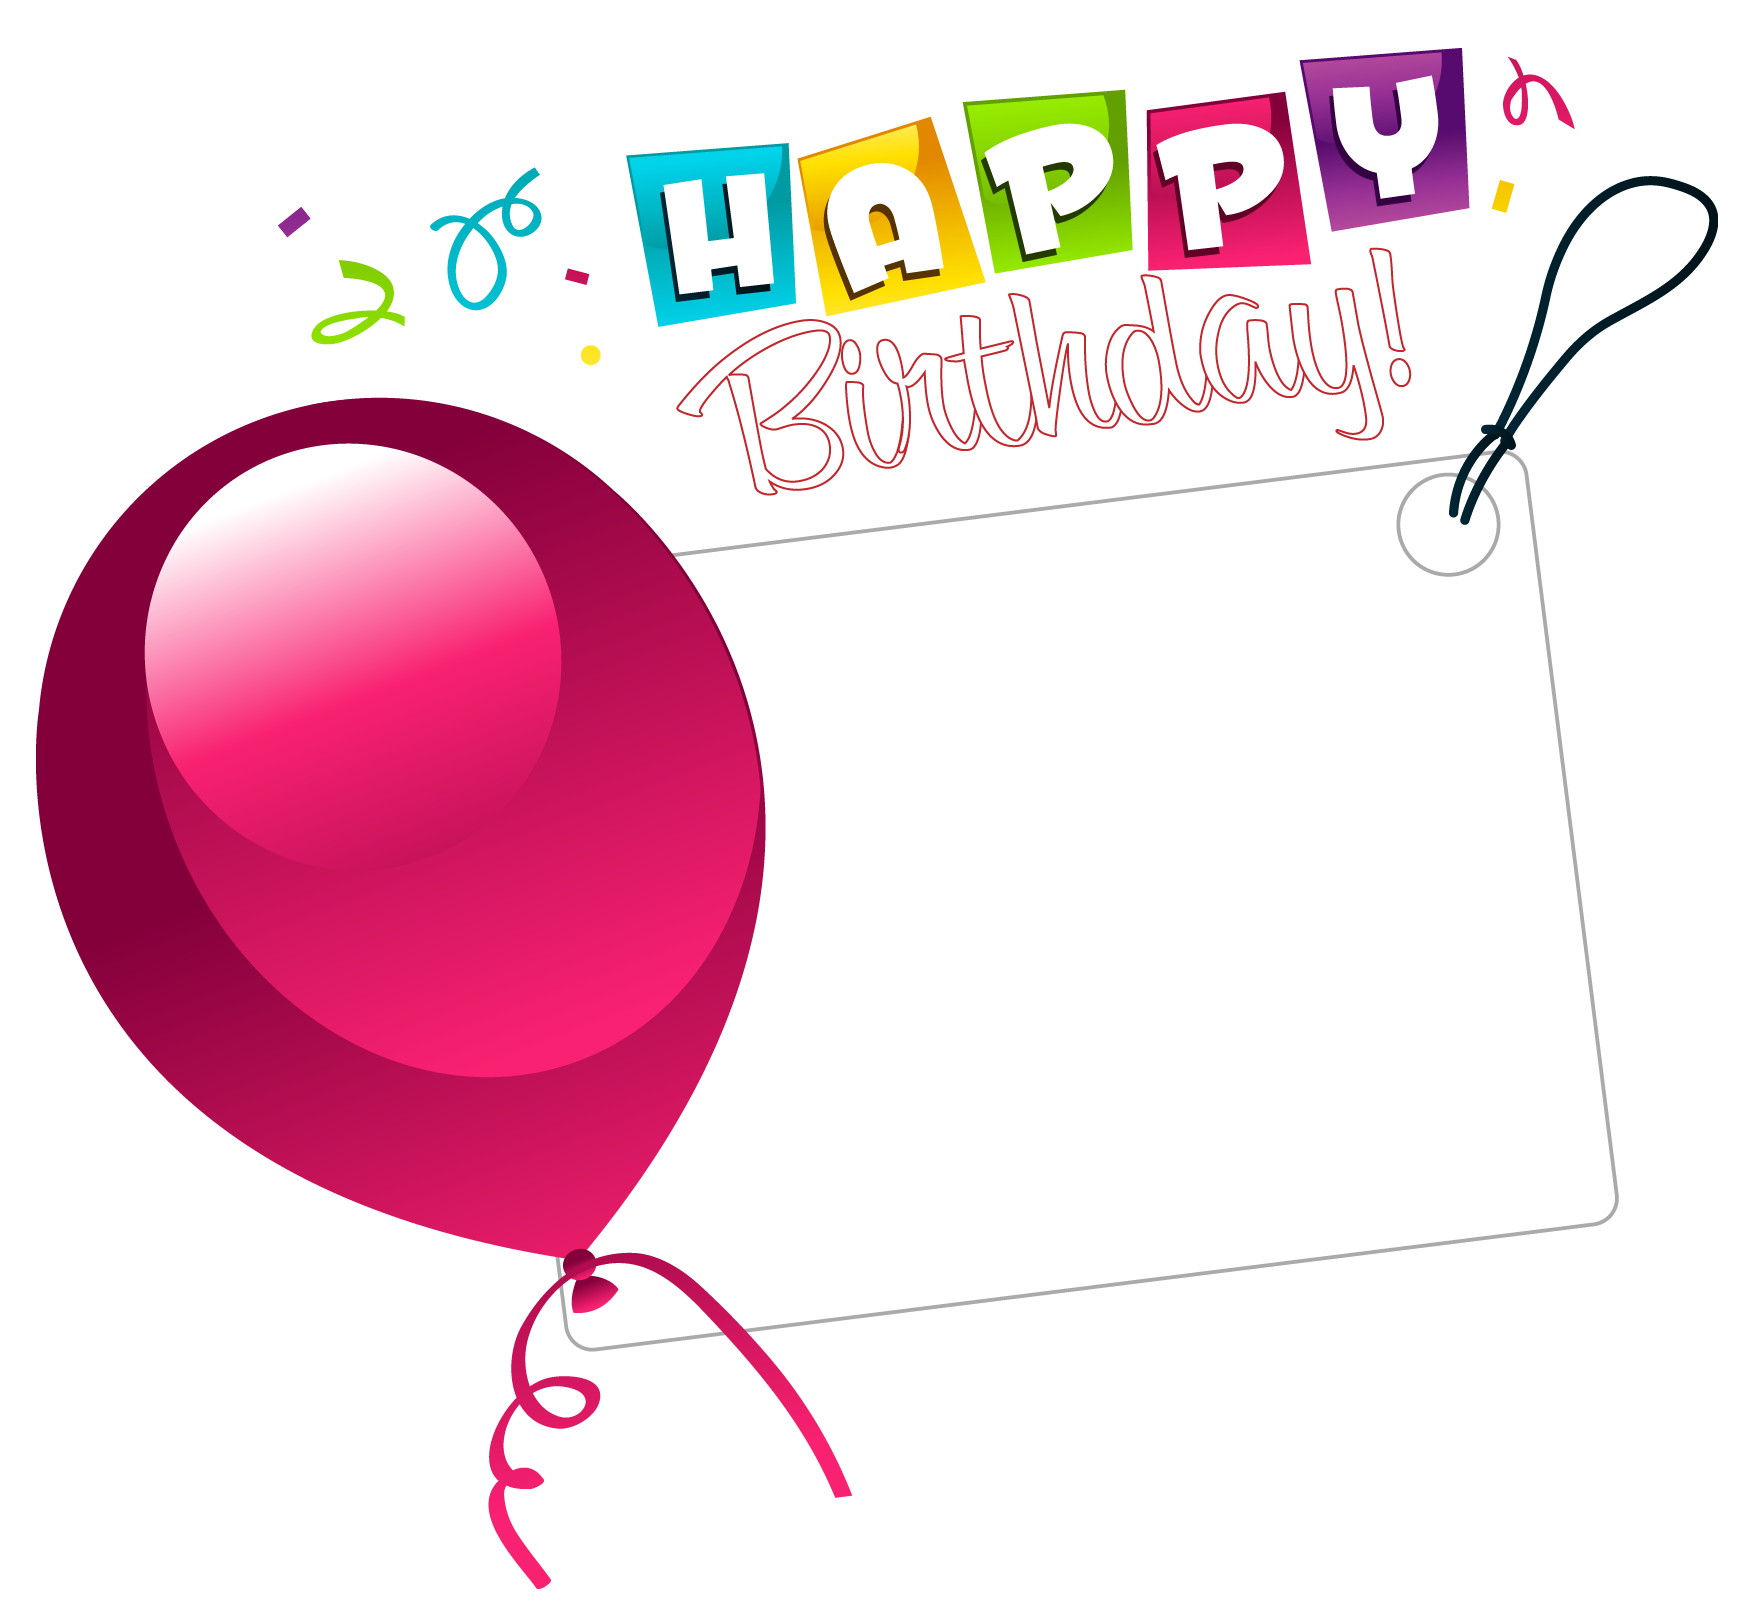 Pink Wish Sticker Balloon Birthday With Transparent PNG Image